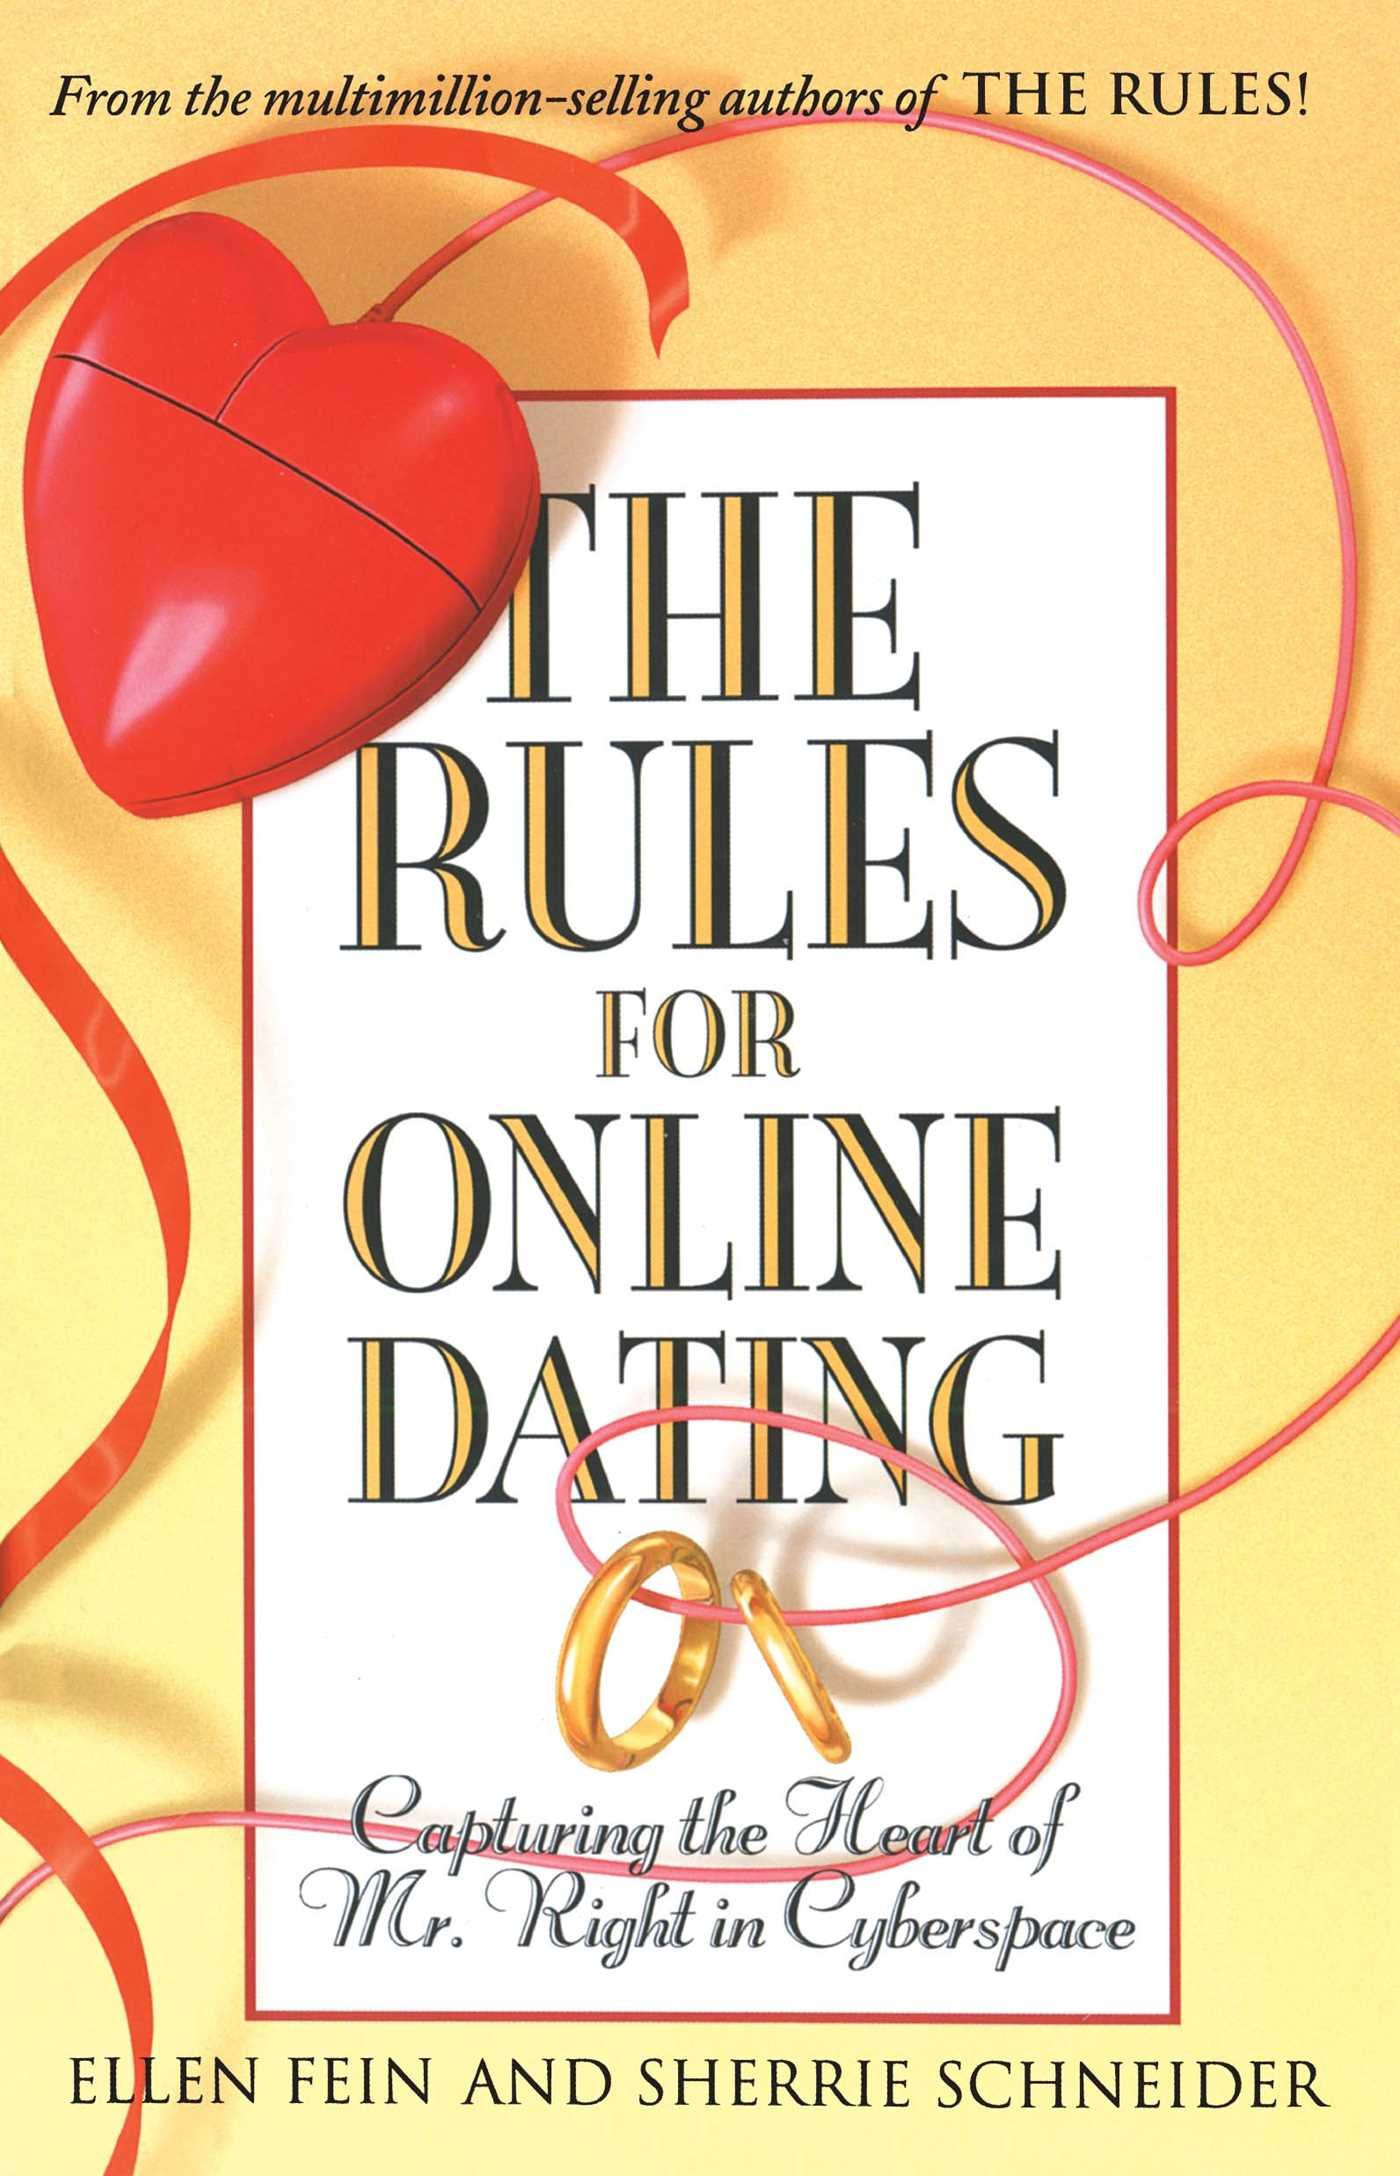 Guide to online dating.pdf password